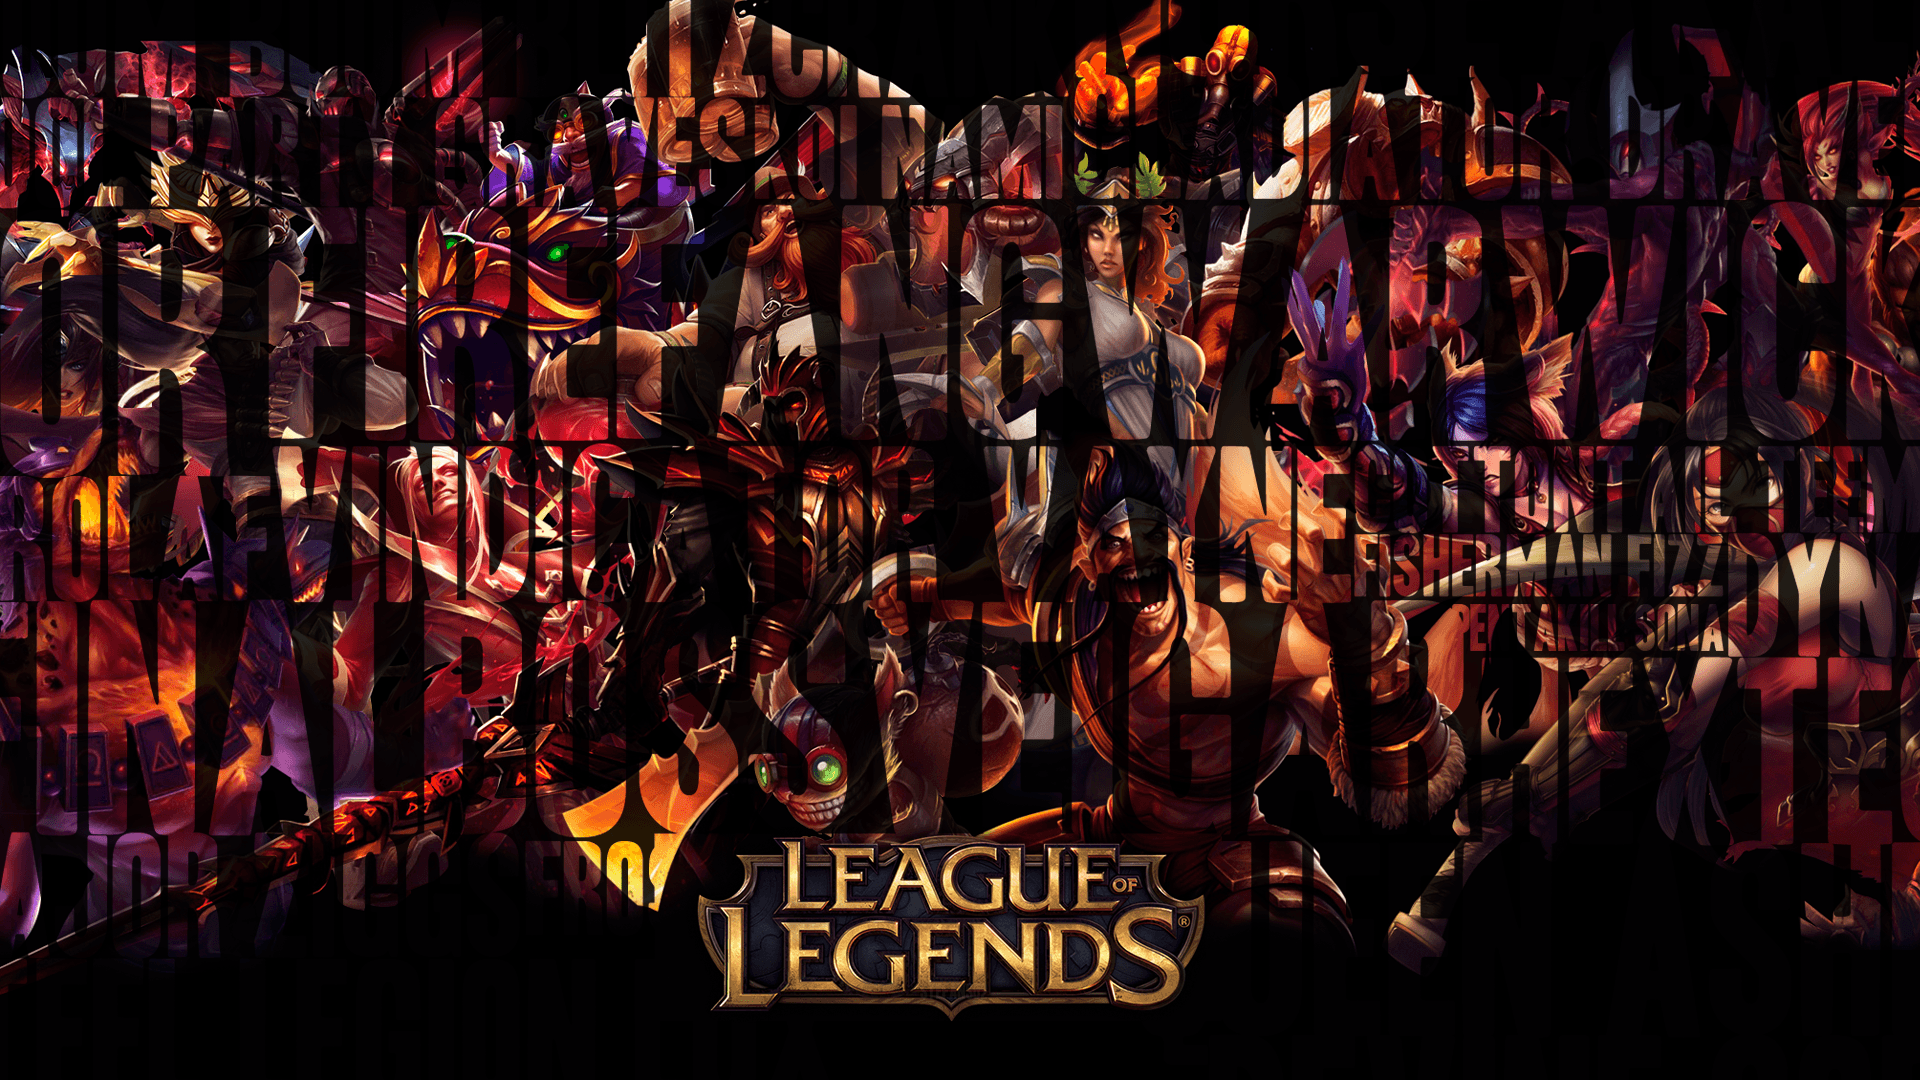 Top 25 League Of Legends Wallpapers In Hd 4k And 8k